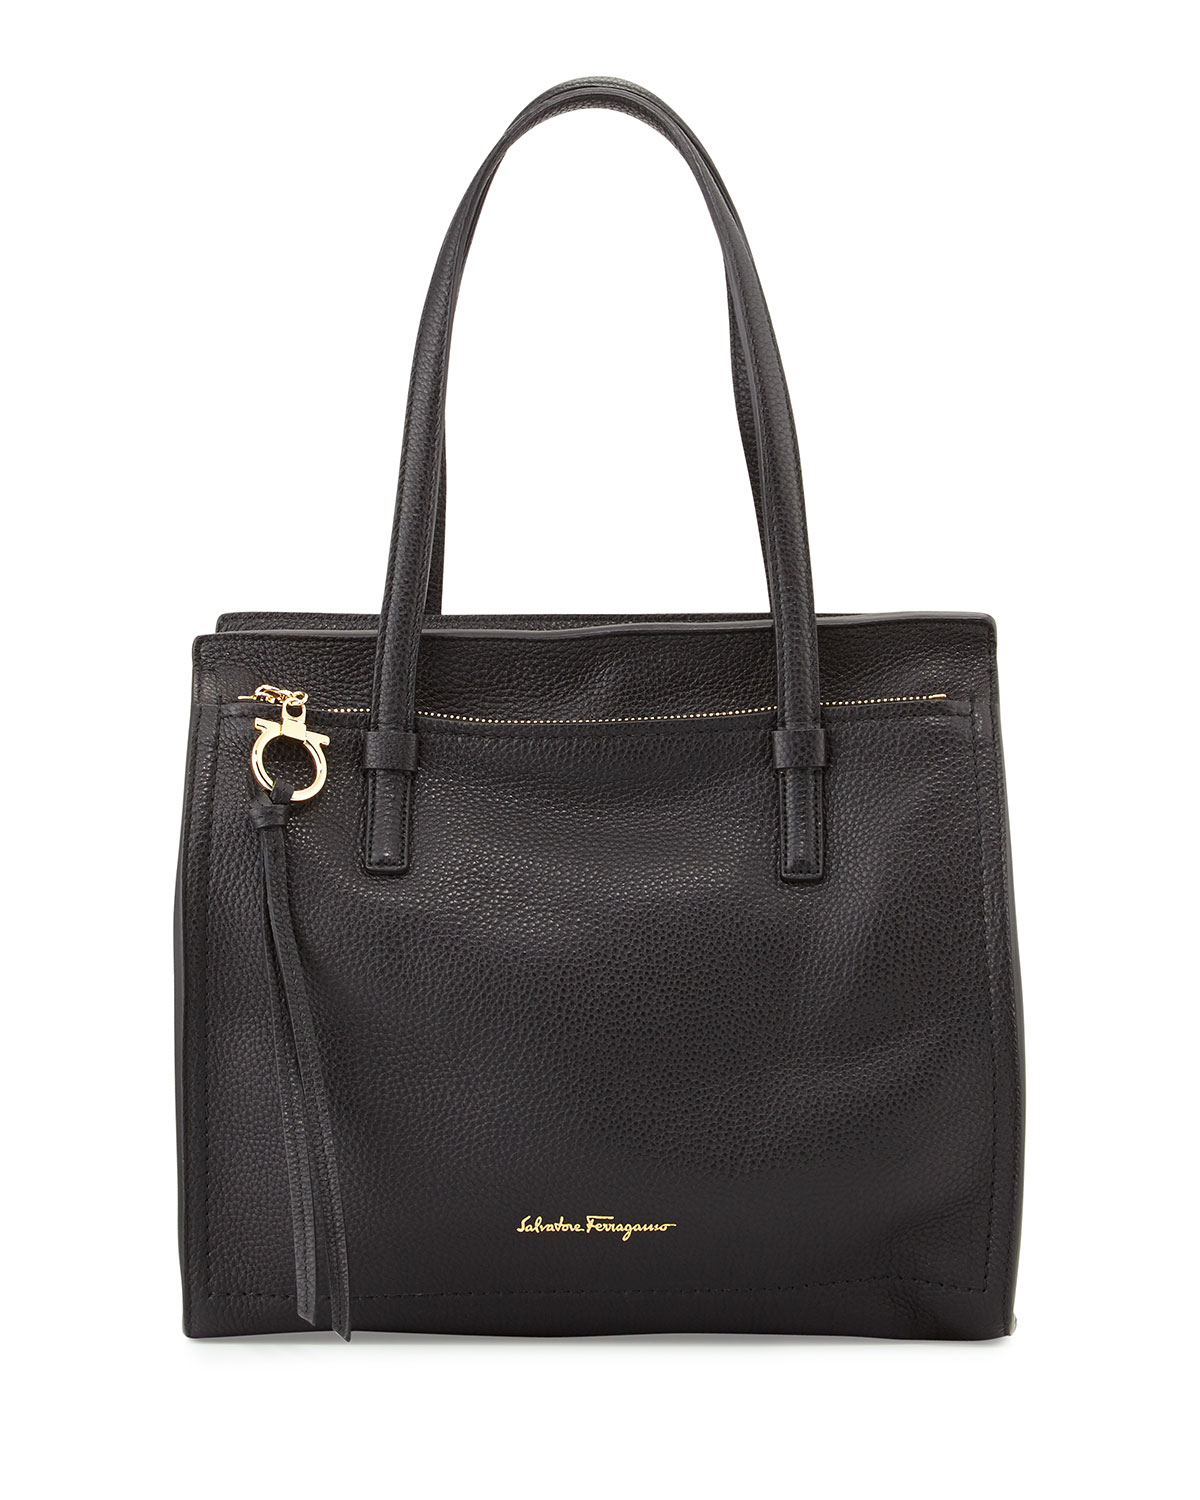 Salvatore Ferragamo Medium Leather Tote Bag 88bb8b4e173f2